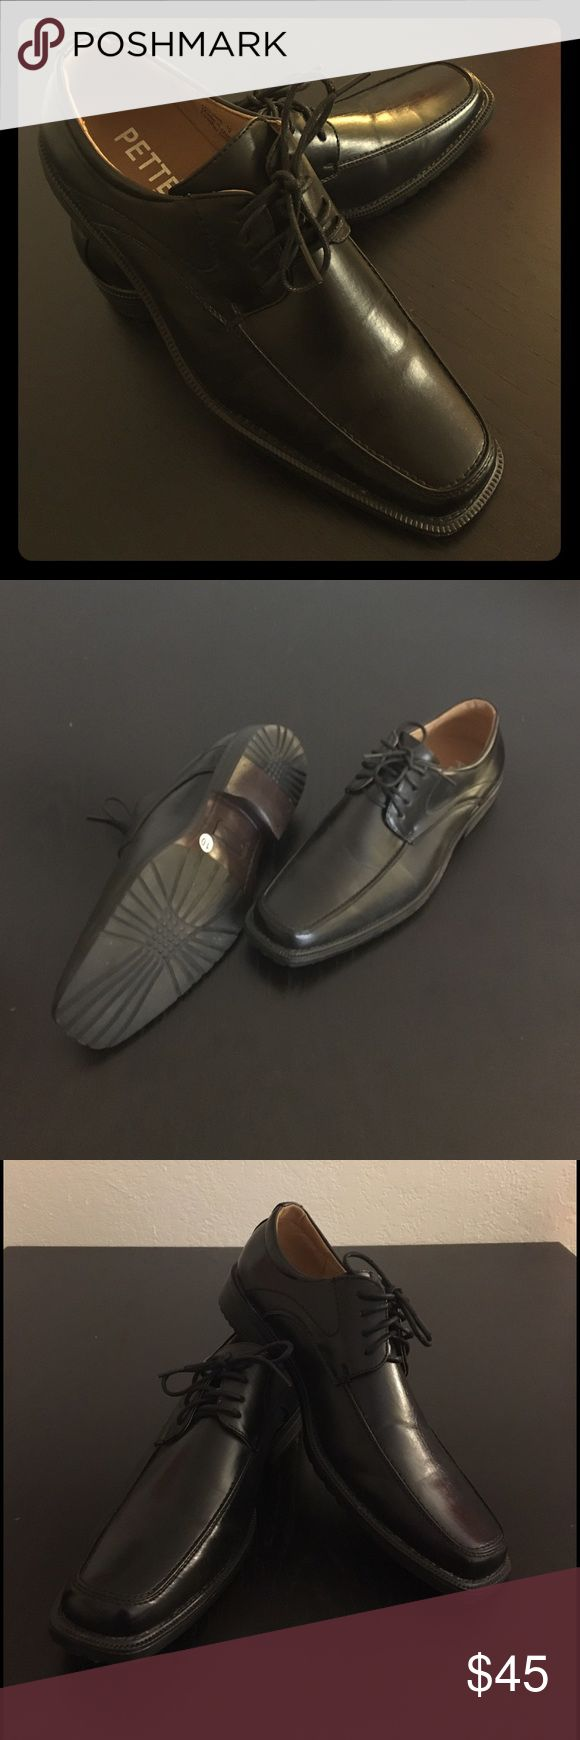 Men's dress shoes Lace up men's dress shoes. Like new, only worn once. Black, size 10 Shoes